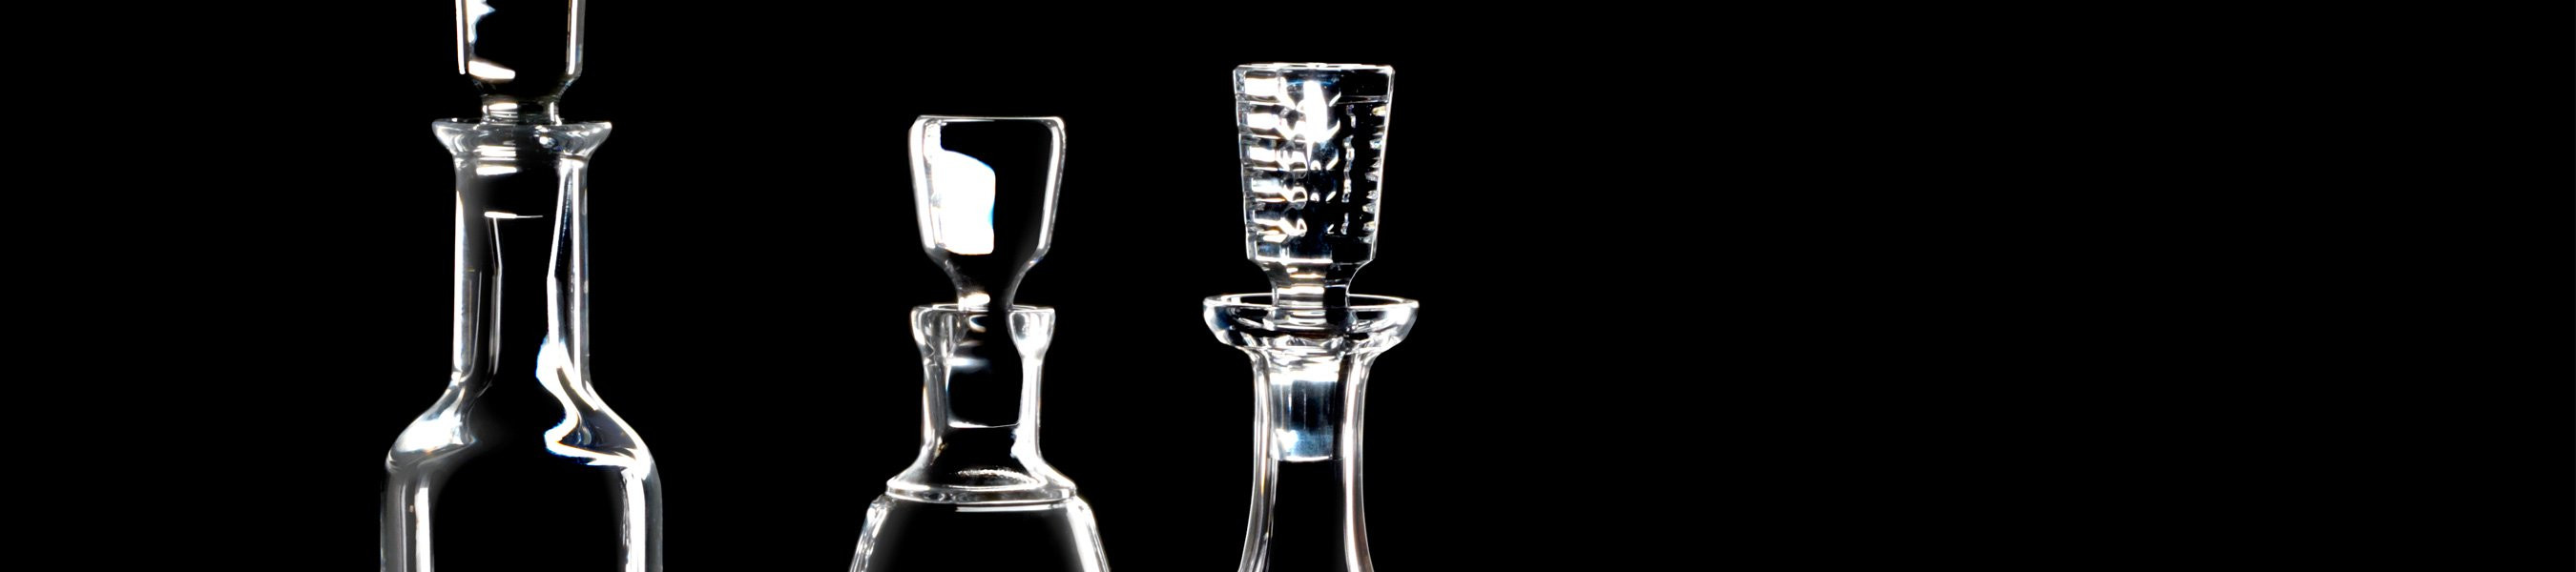 polonia lead crystal vase of crystal decanters pitchers carafes waterforda us for waterford crystal decanters pitchers carafes